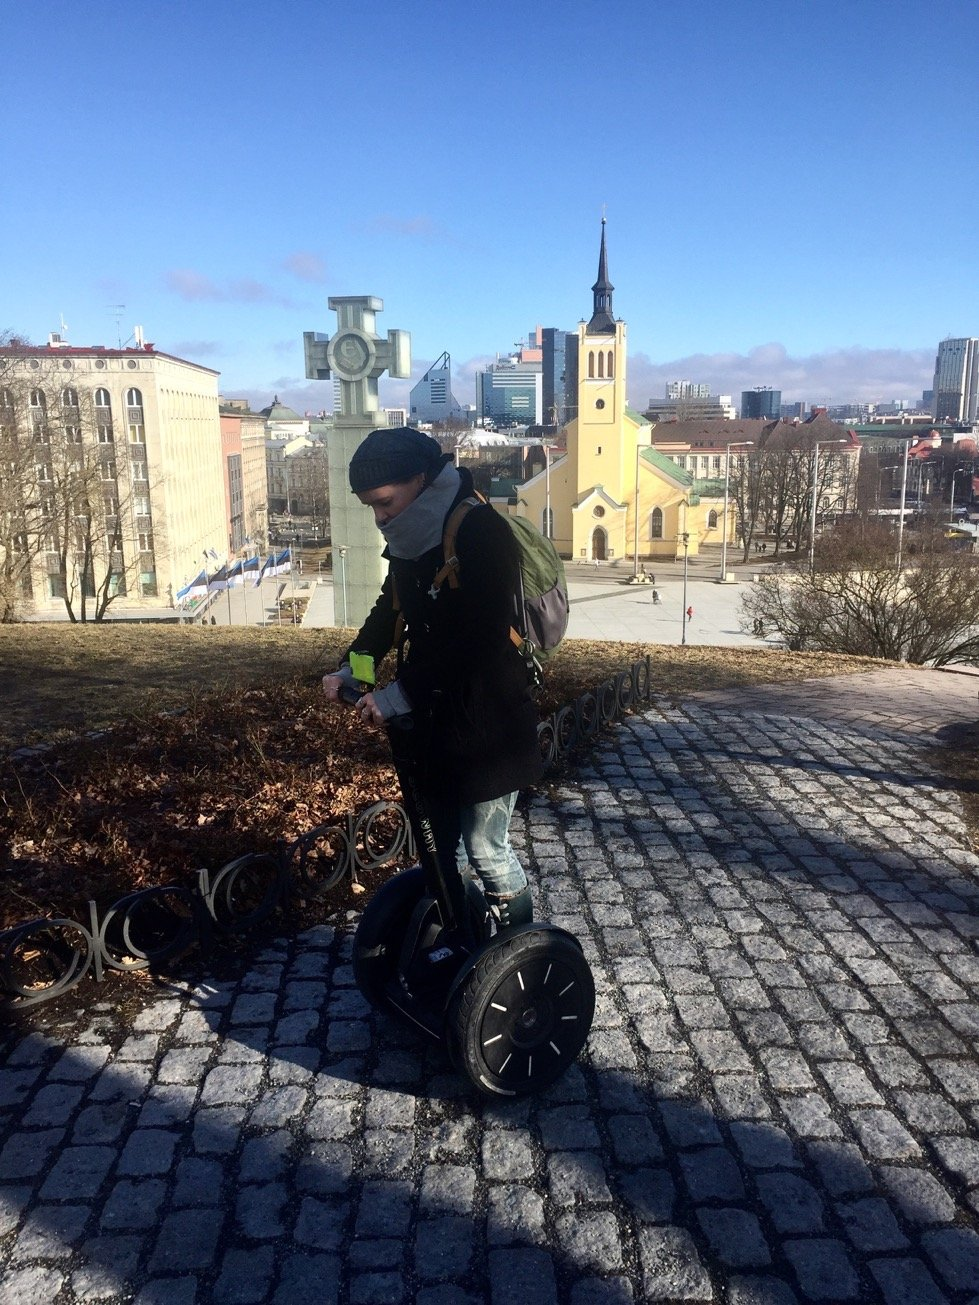 Sarah's standing on a segway in Tallinn